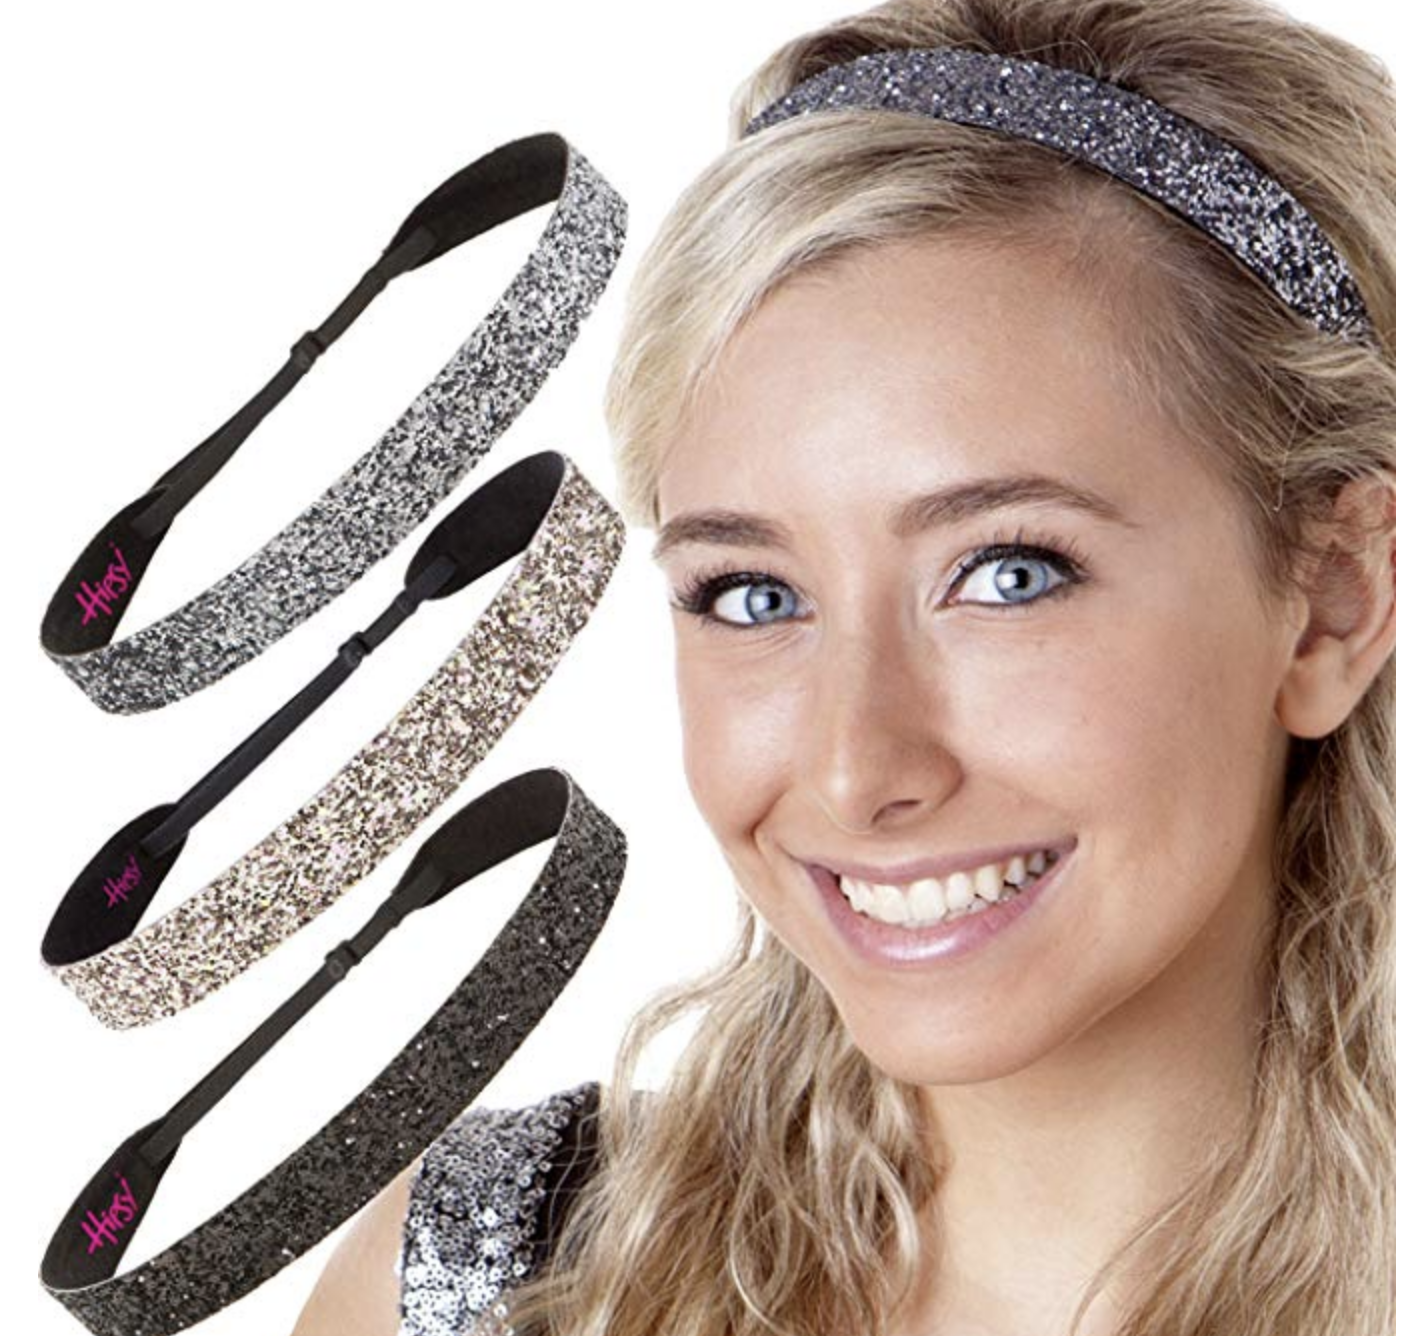 11aa885258ce Hipsy Adjustable NO SLIP Sparkly Fashion Bling Glitter Headbands for Women  Gift Pack (Wide Black Rose Gold Gunmetal 3pk) - Walmart.com